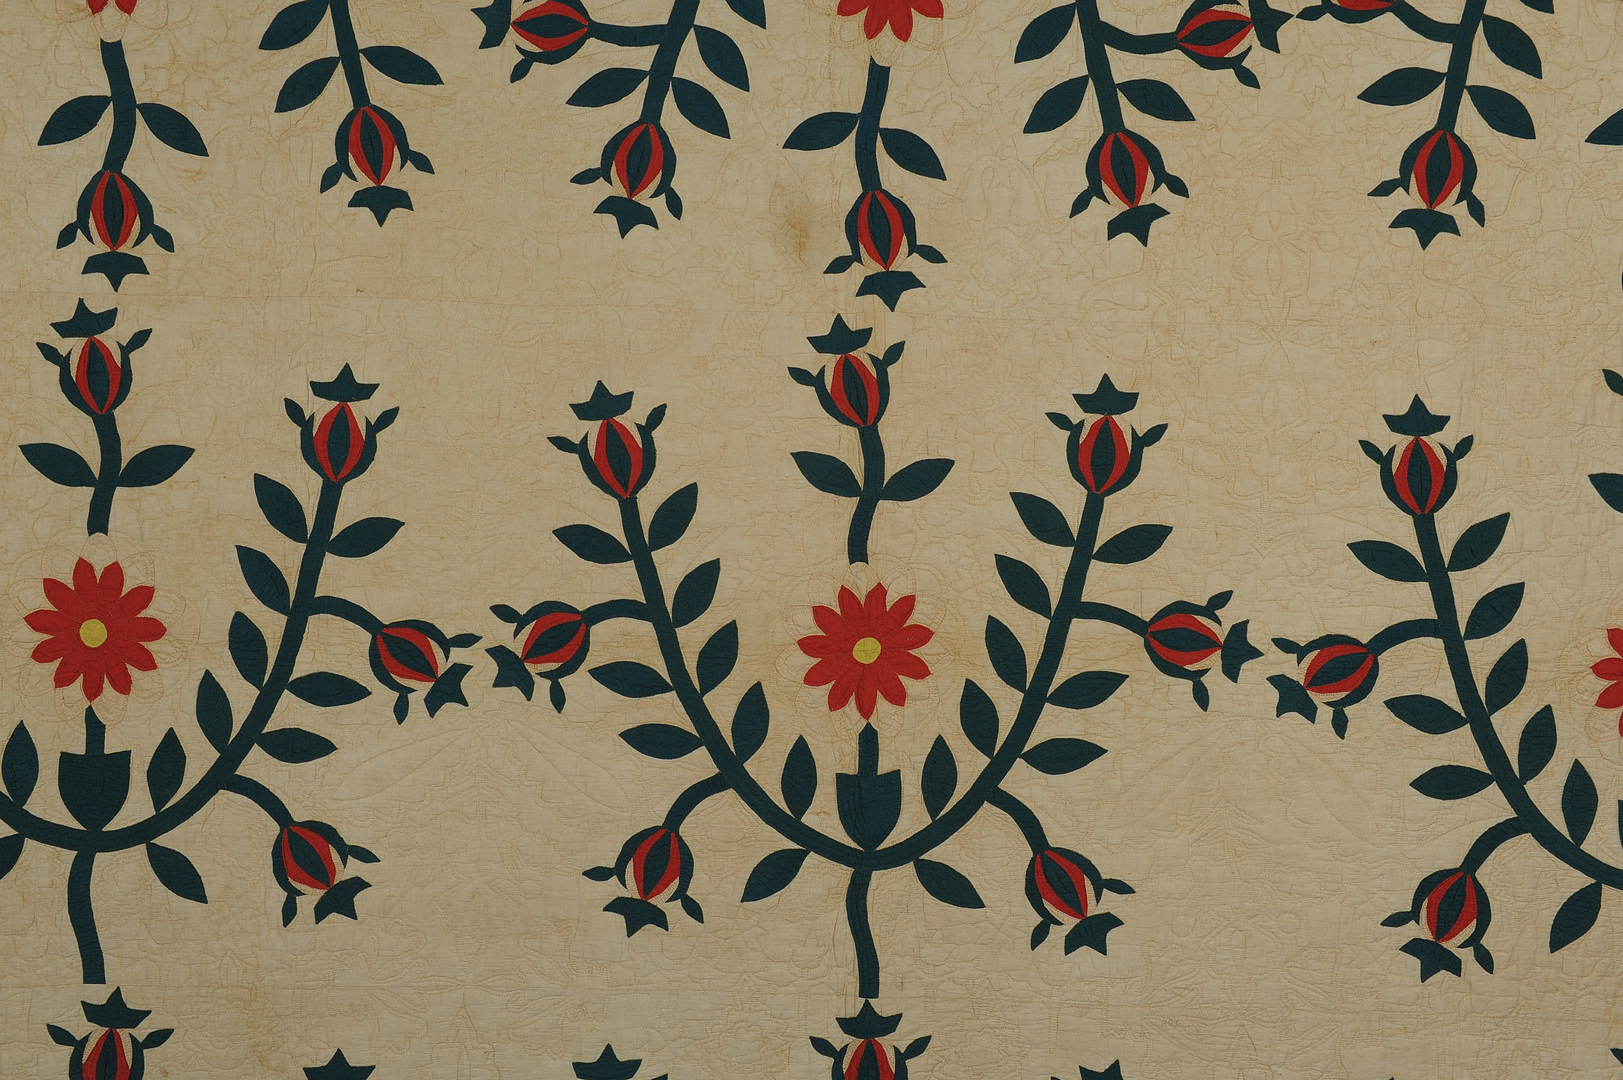 Lot 146: 19th Century Middle TN Floral Quilt